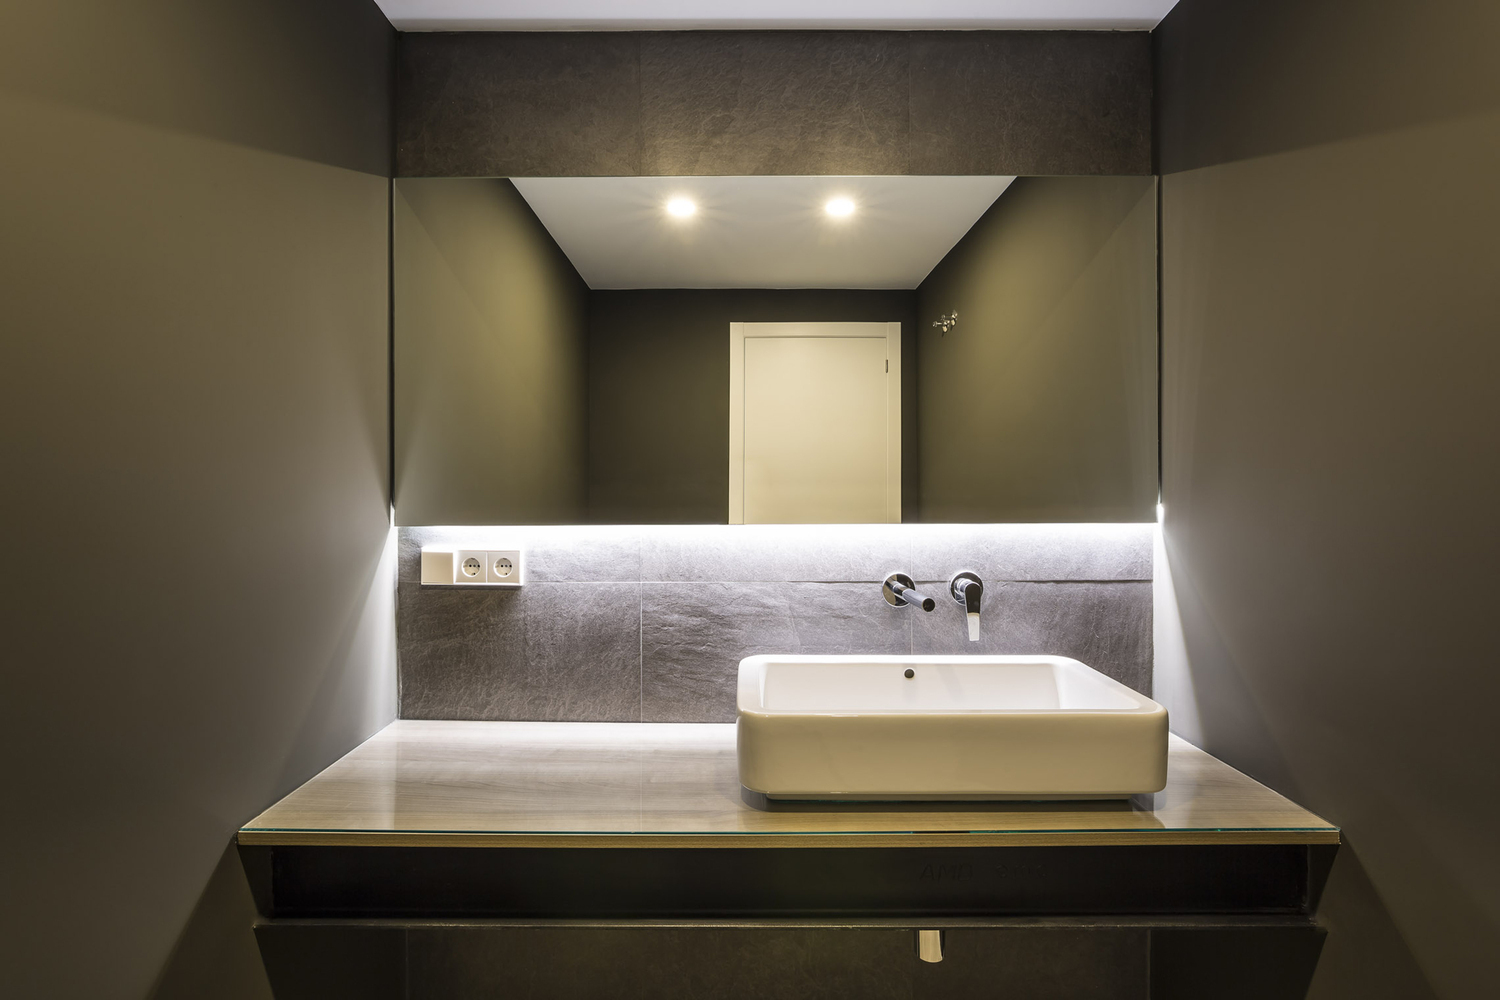 Ordinaire Draw Inspiration From These 21st Century Bathroom Designs